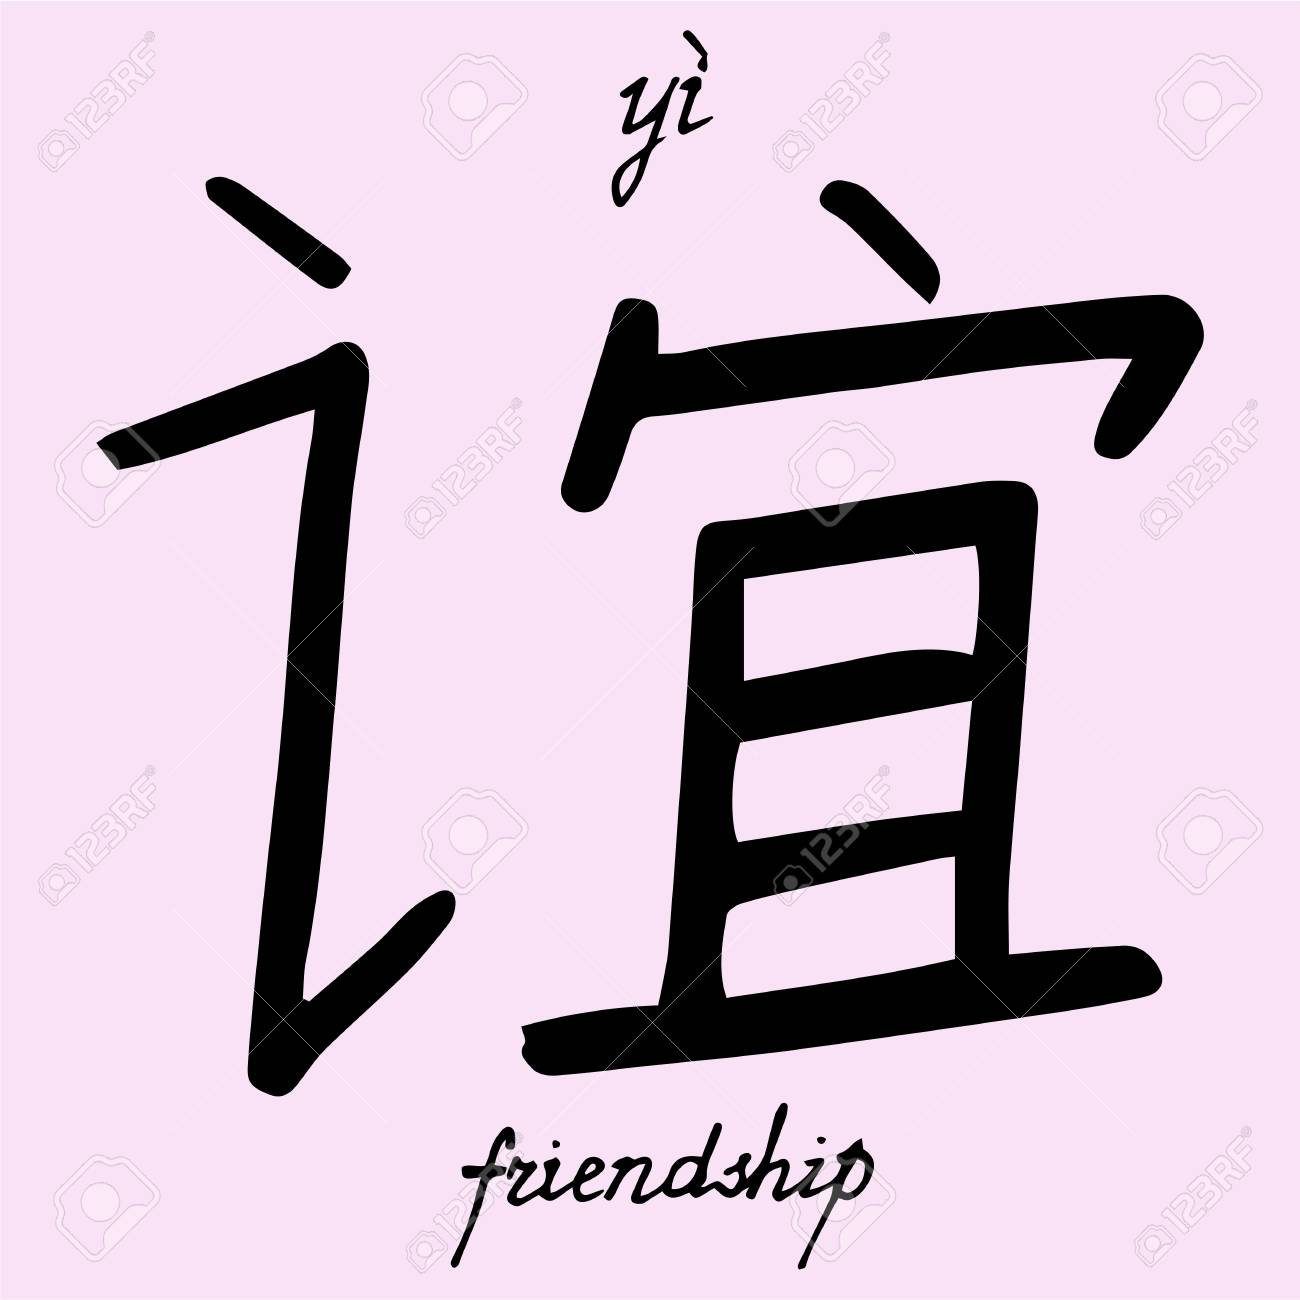 Chinese Character Friendship With Translation Into English Royalty